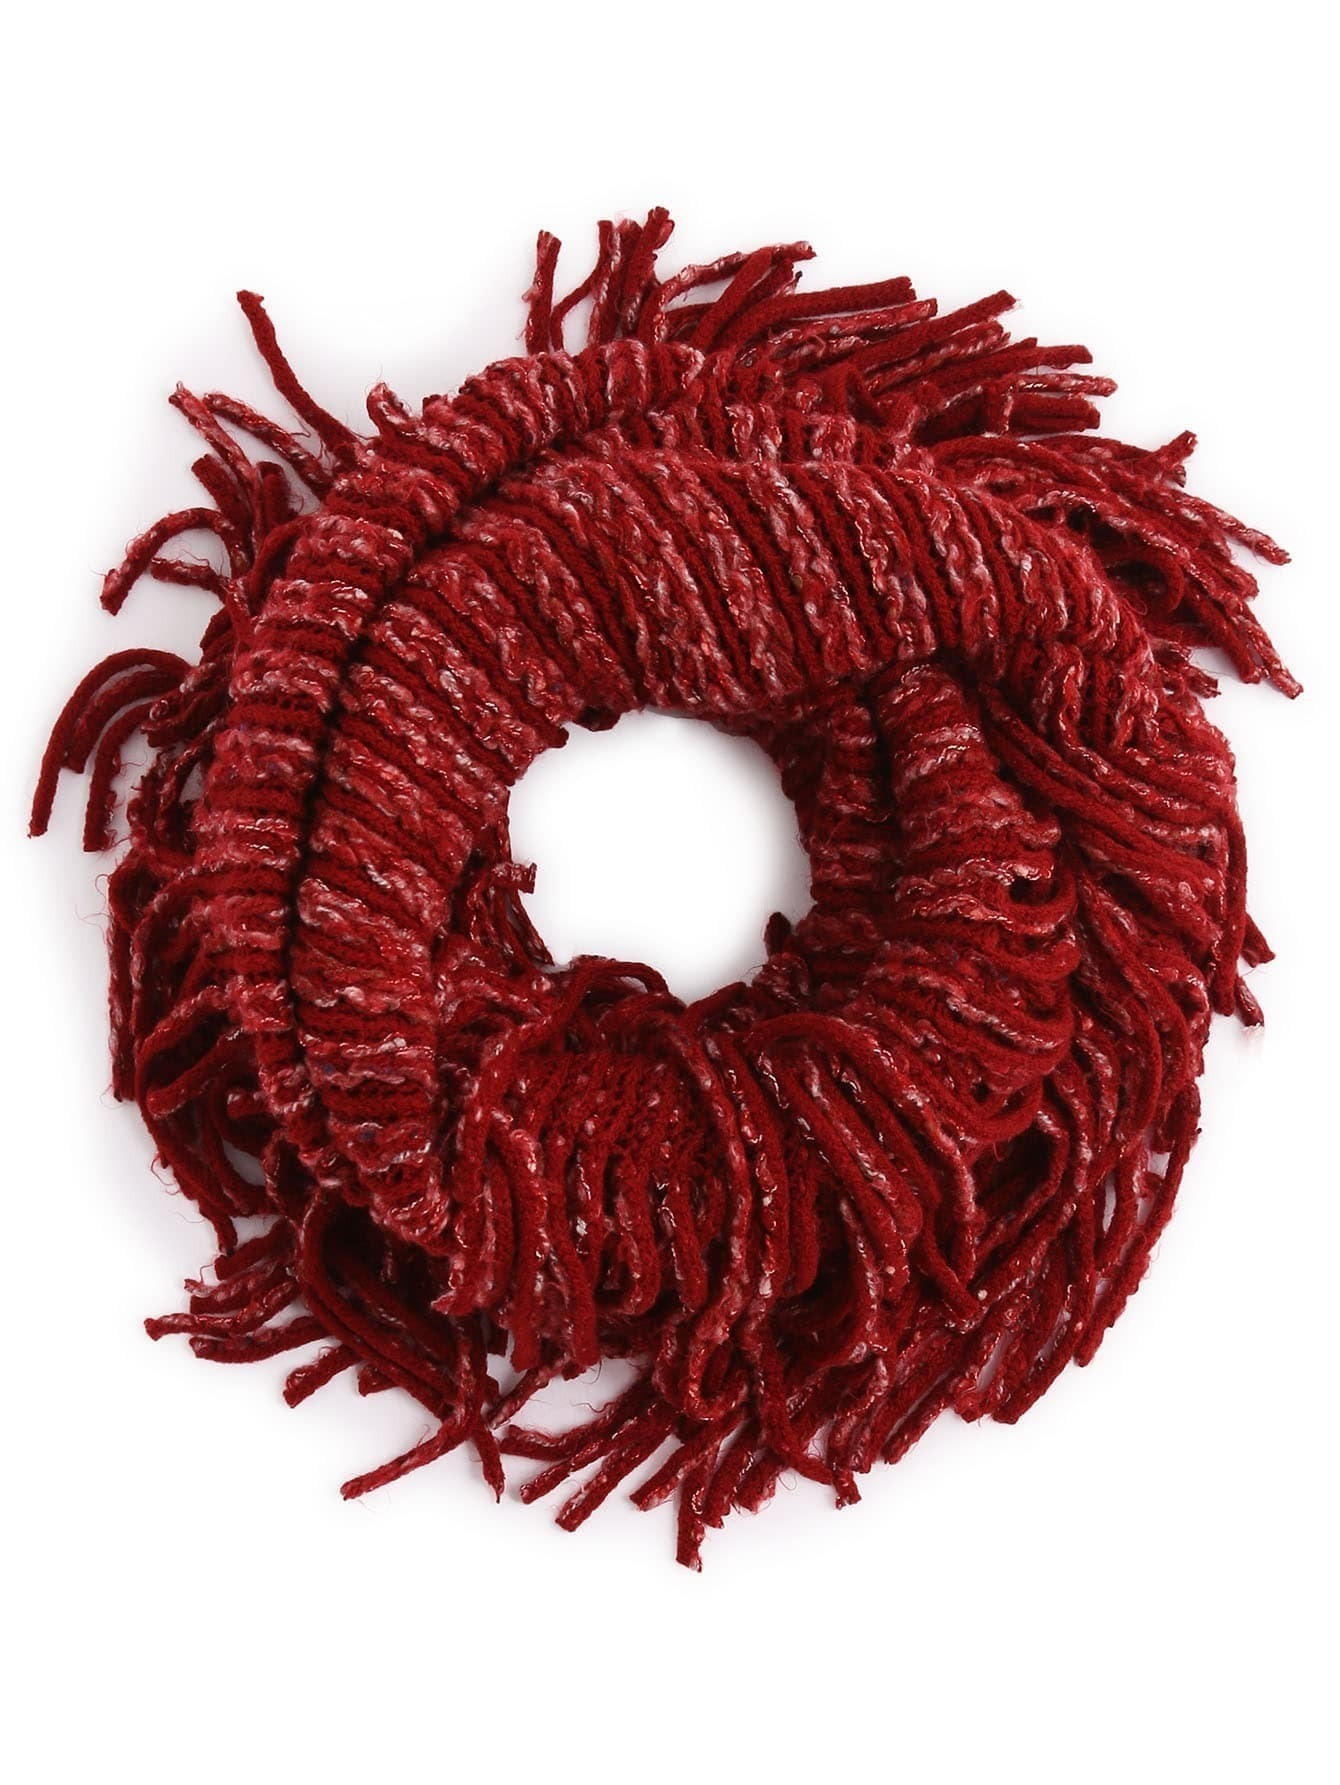 Red Ribbed Textured Fringe Knit Infinity Scarf